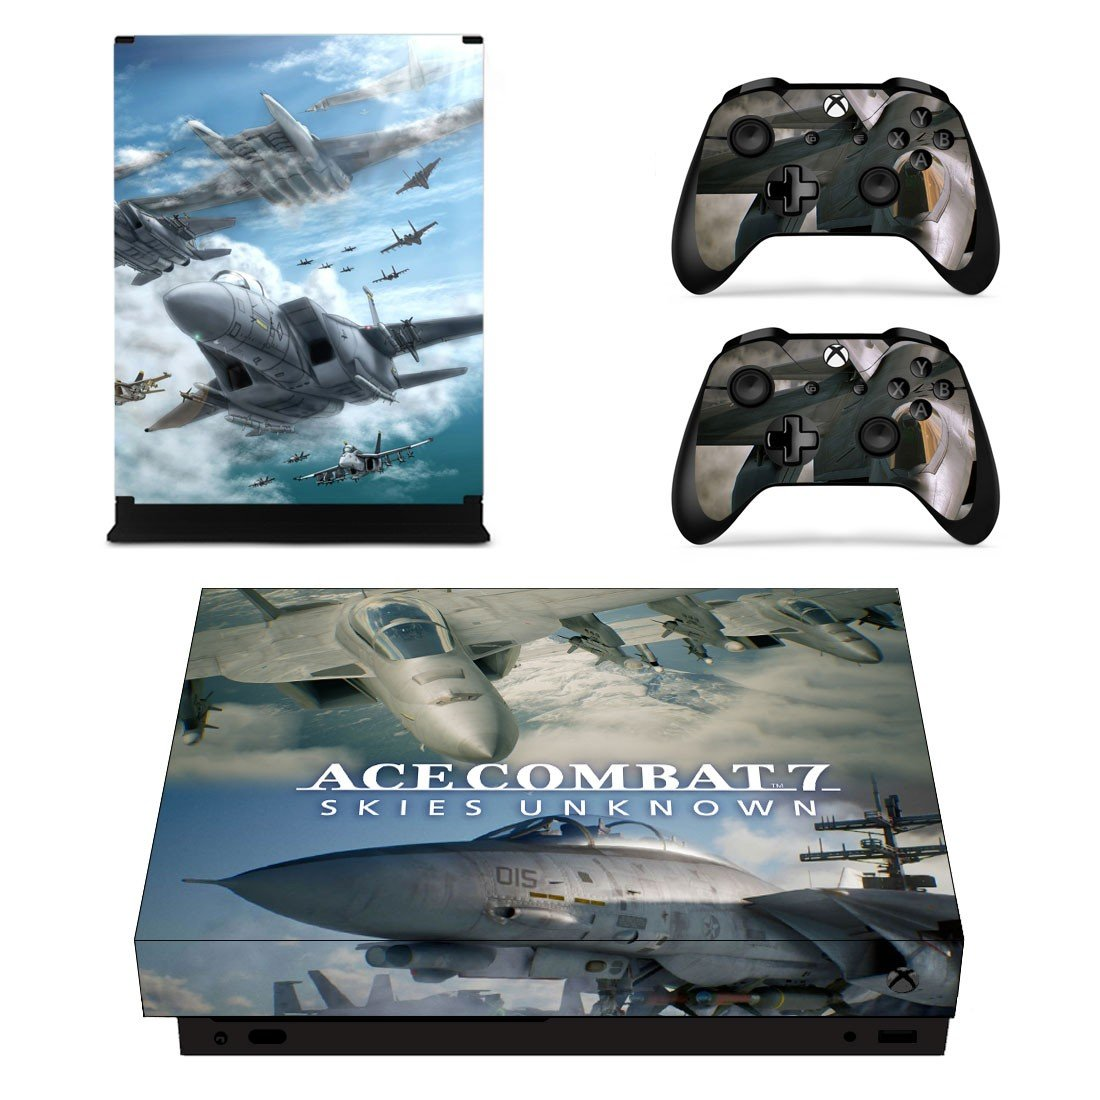 ACE Combat 7 decal skin sticker for Xbox One X console and controllers